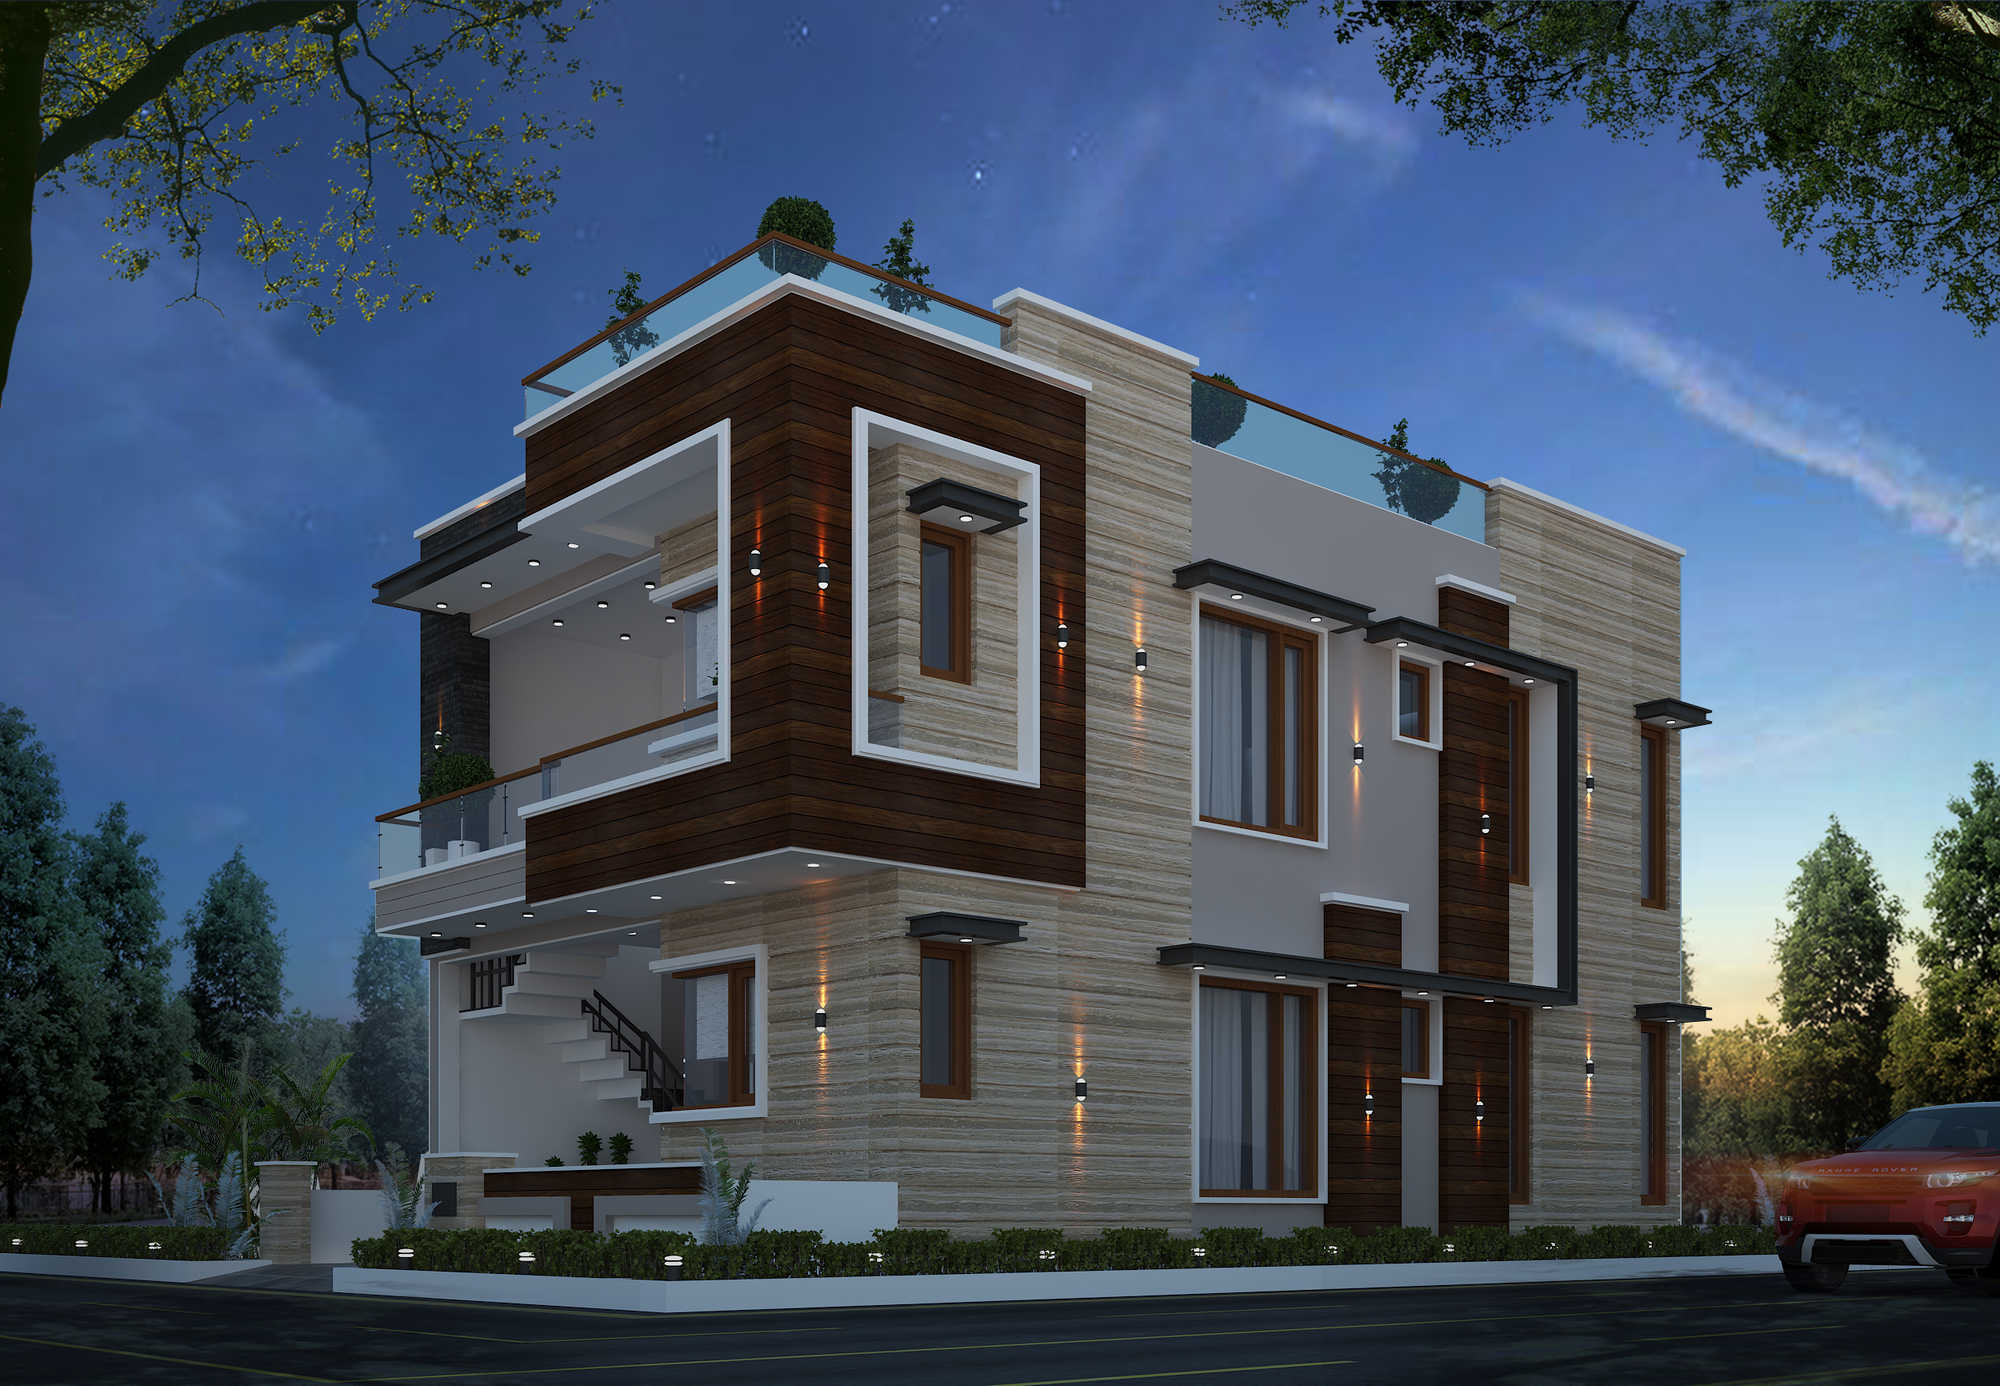 Charvi Interior - Architect & Interior Designer in Chandigarh